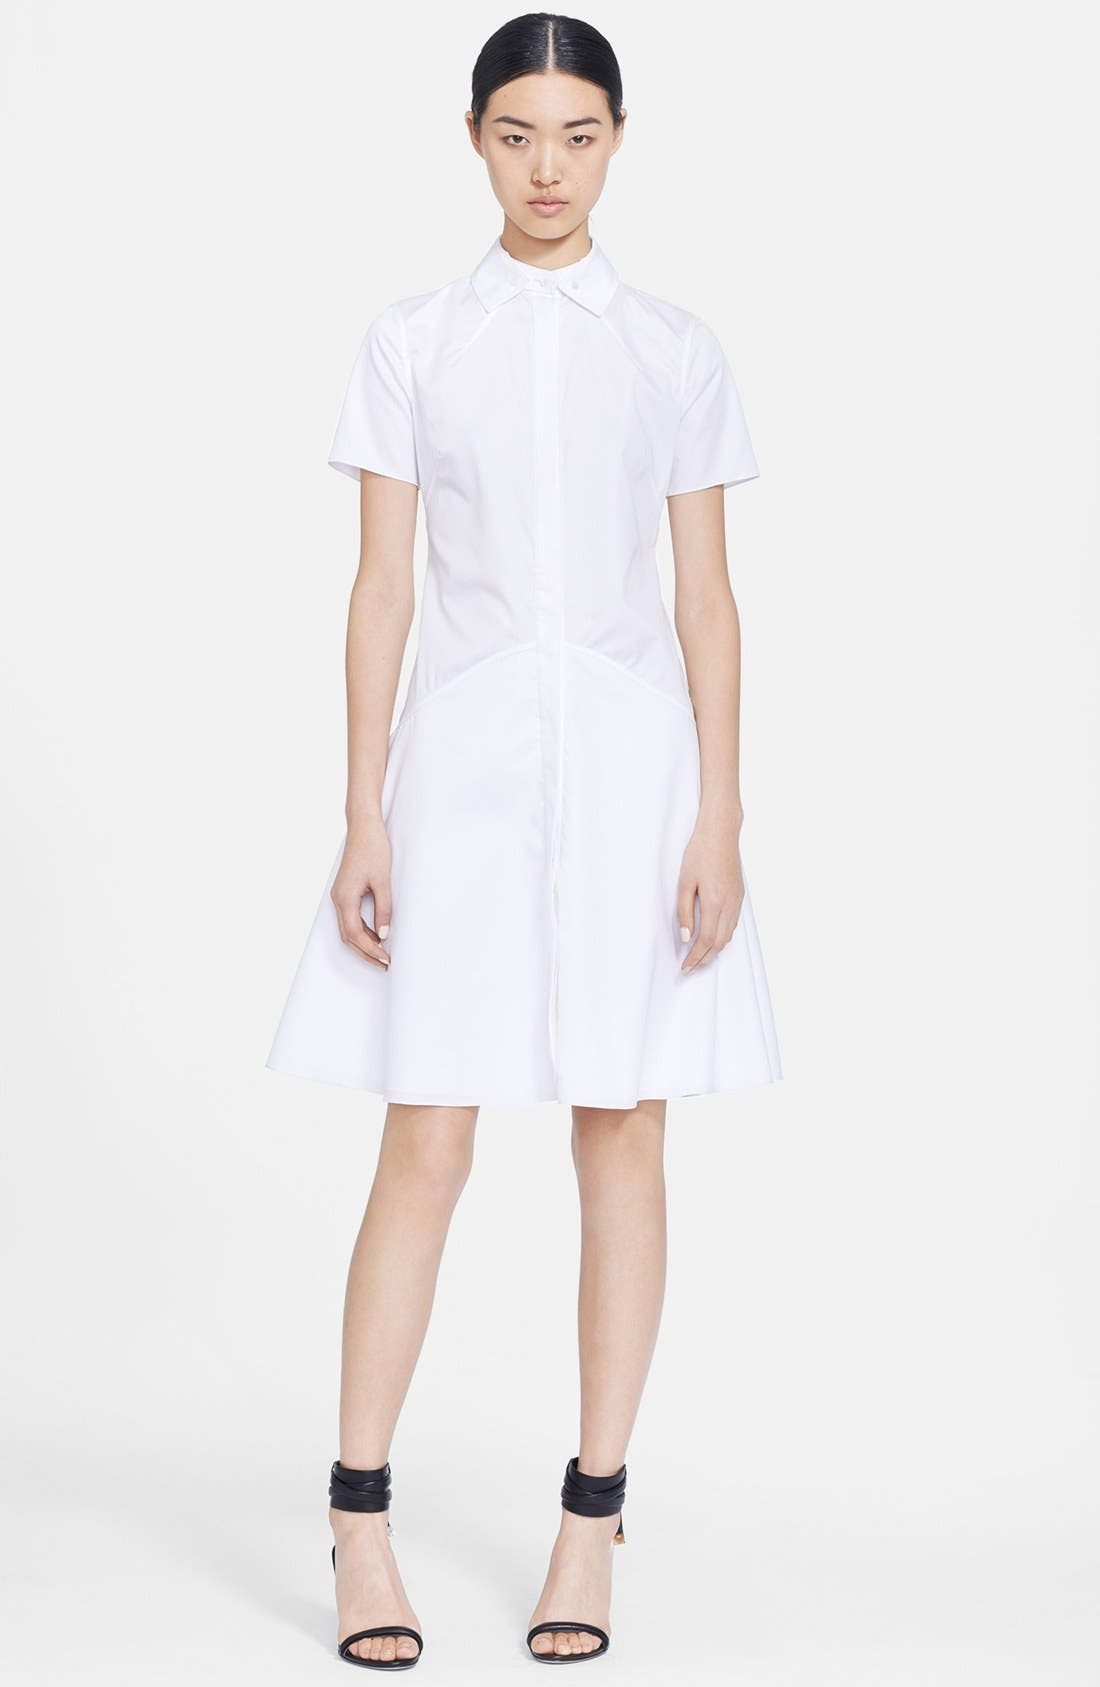 Alternate Image 1 Selected - Jason Wu Poplin Fit & Flare Shirtdress